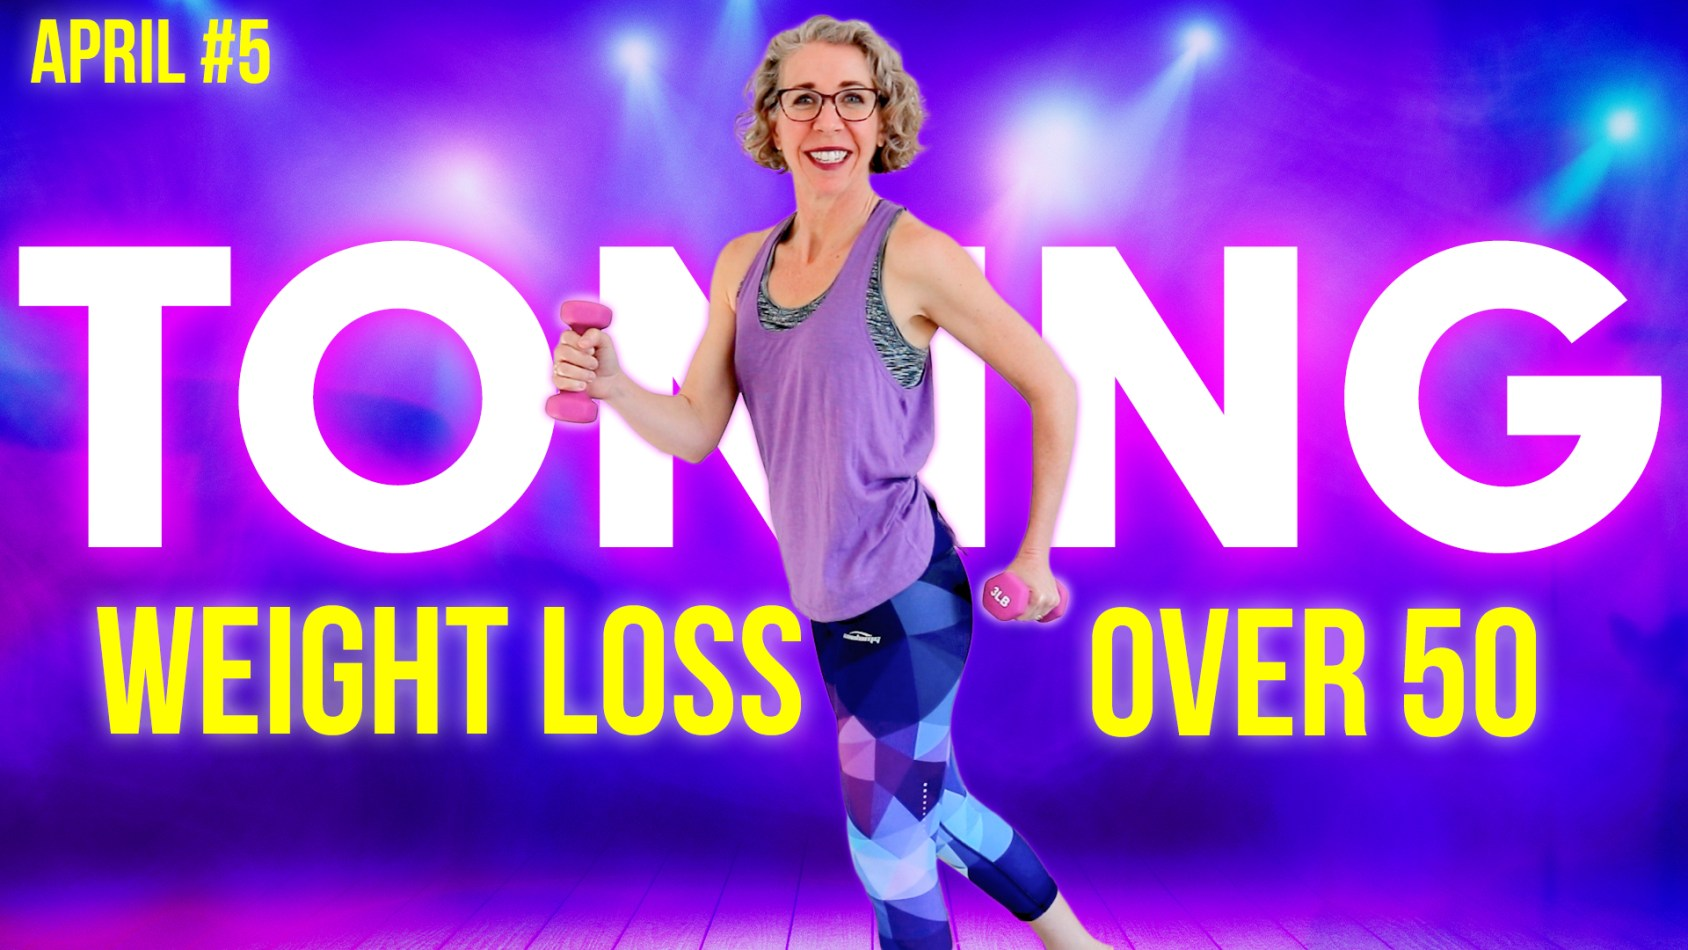 Fun, SHOULDER-FRIENDLY Cardio Toning Weight Loss Workout ???? April Day 5